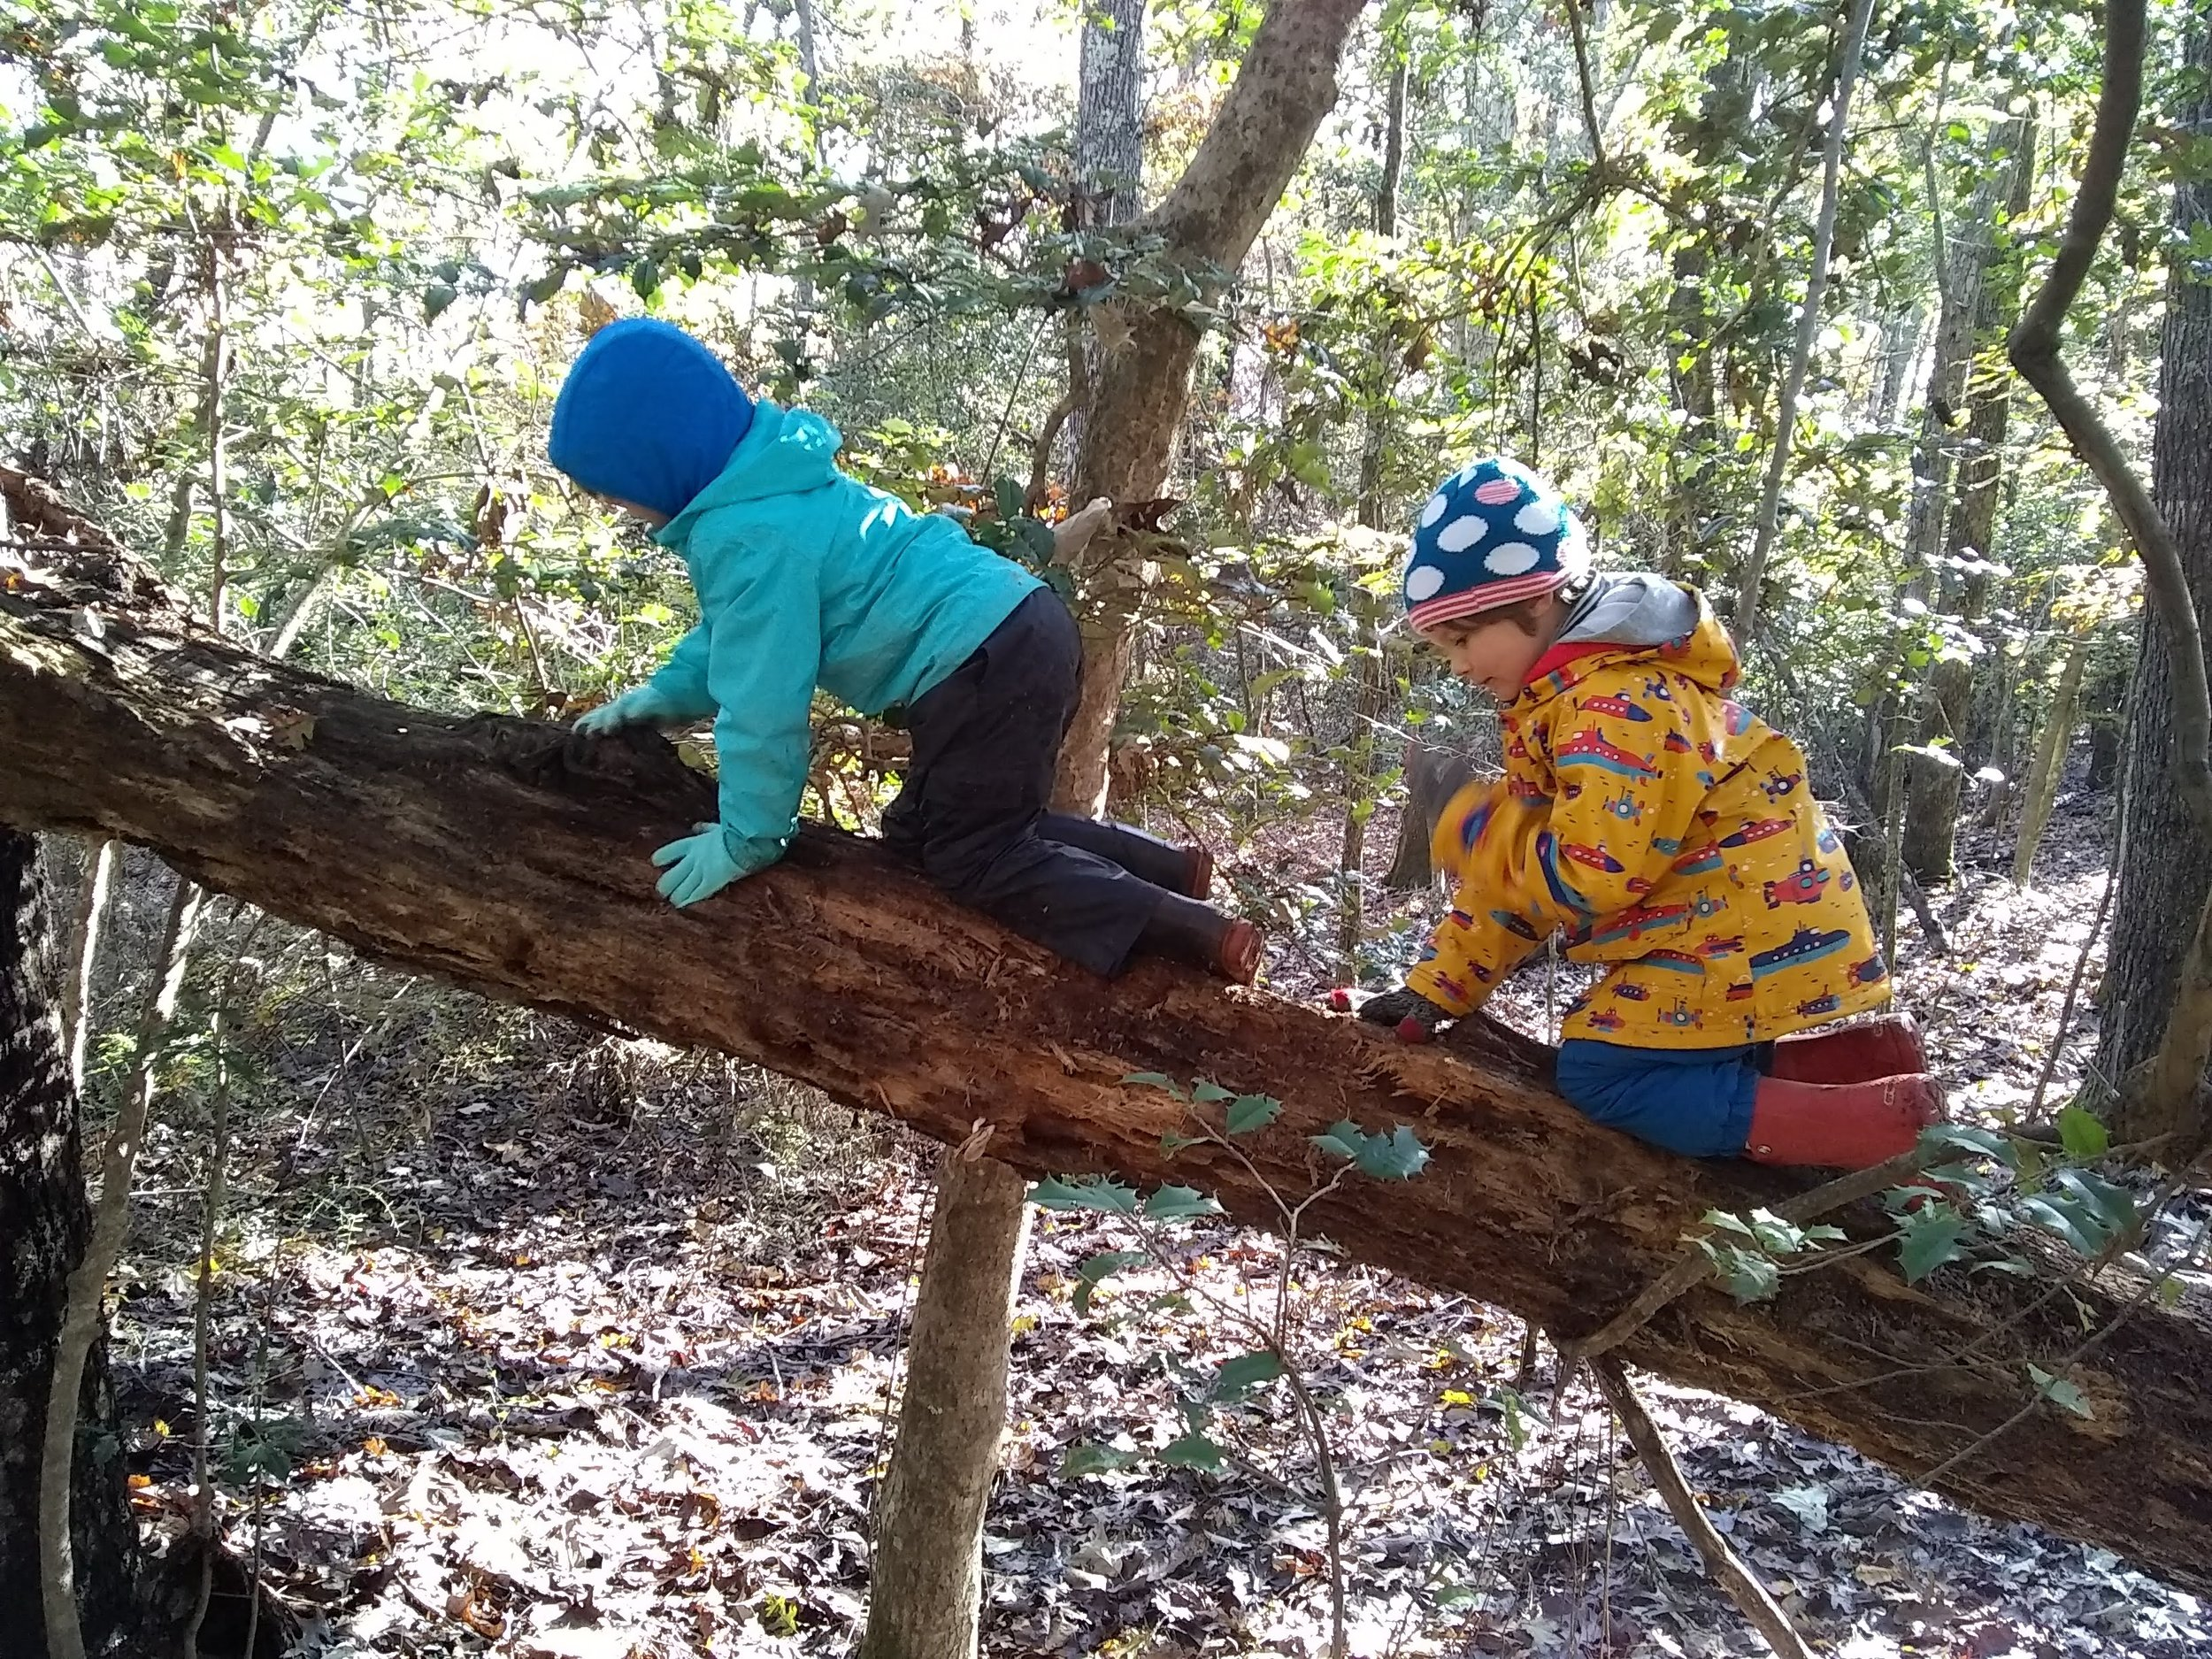 Wendell and Sammy climbed to an area where they can get lost in conversation and imaginative play.